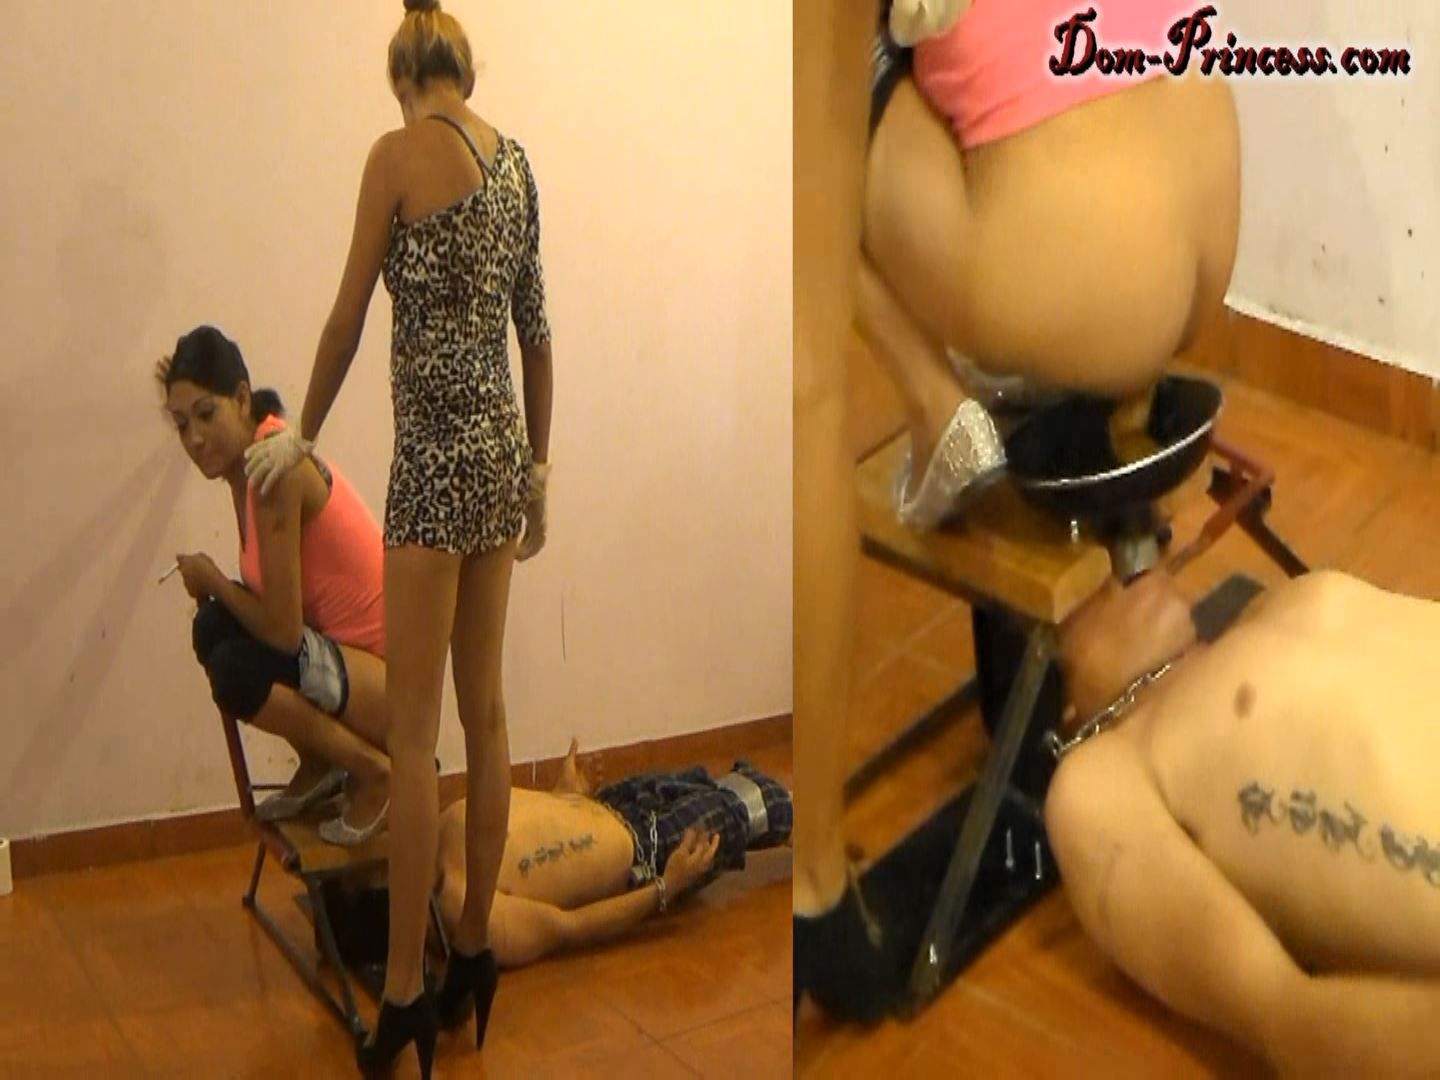 [DOM-PRINCESS] The Raw Tapes, braking a Man into a Humant Toilet. What went wrong Part 1 Britany [FULL HD][1080p][WMV]